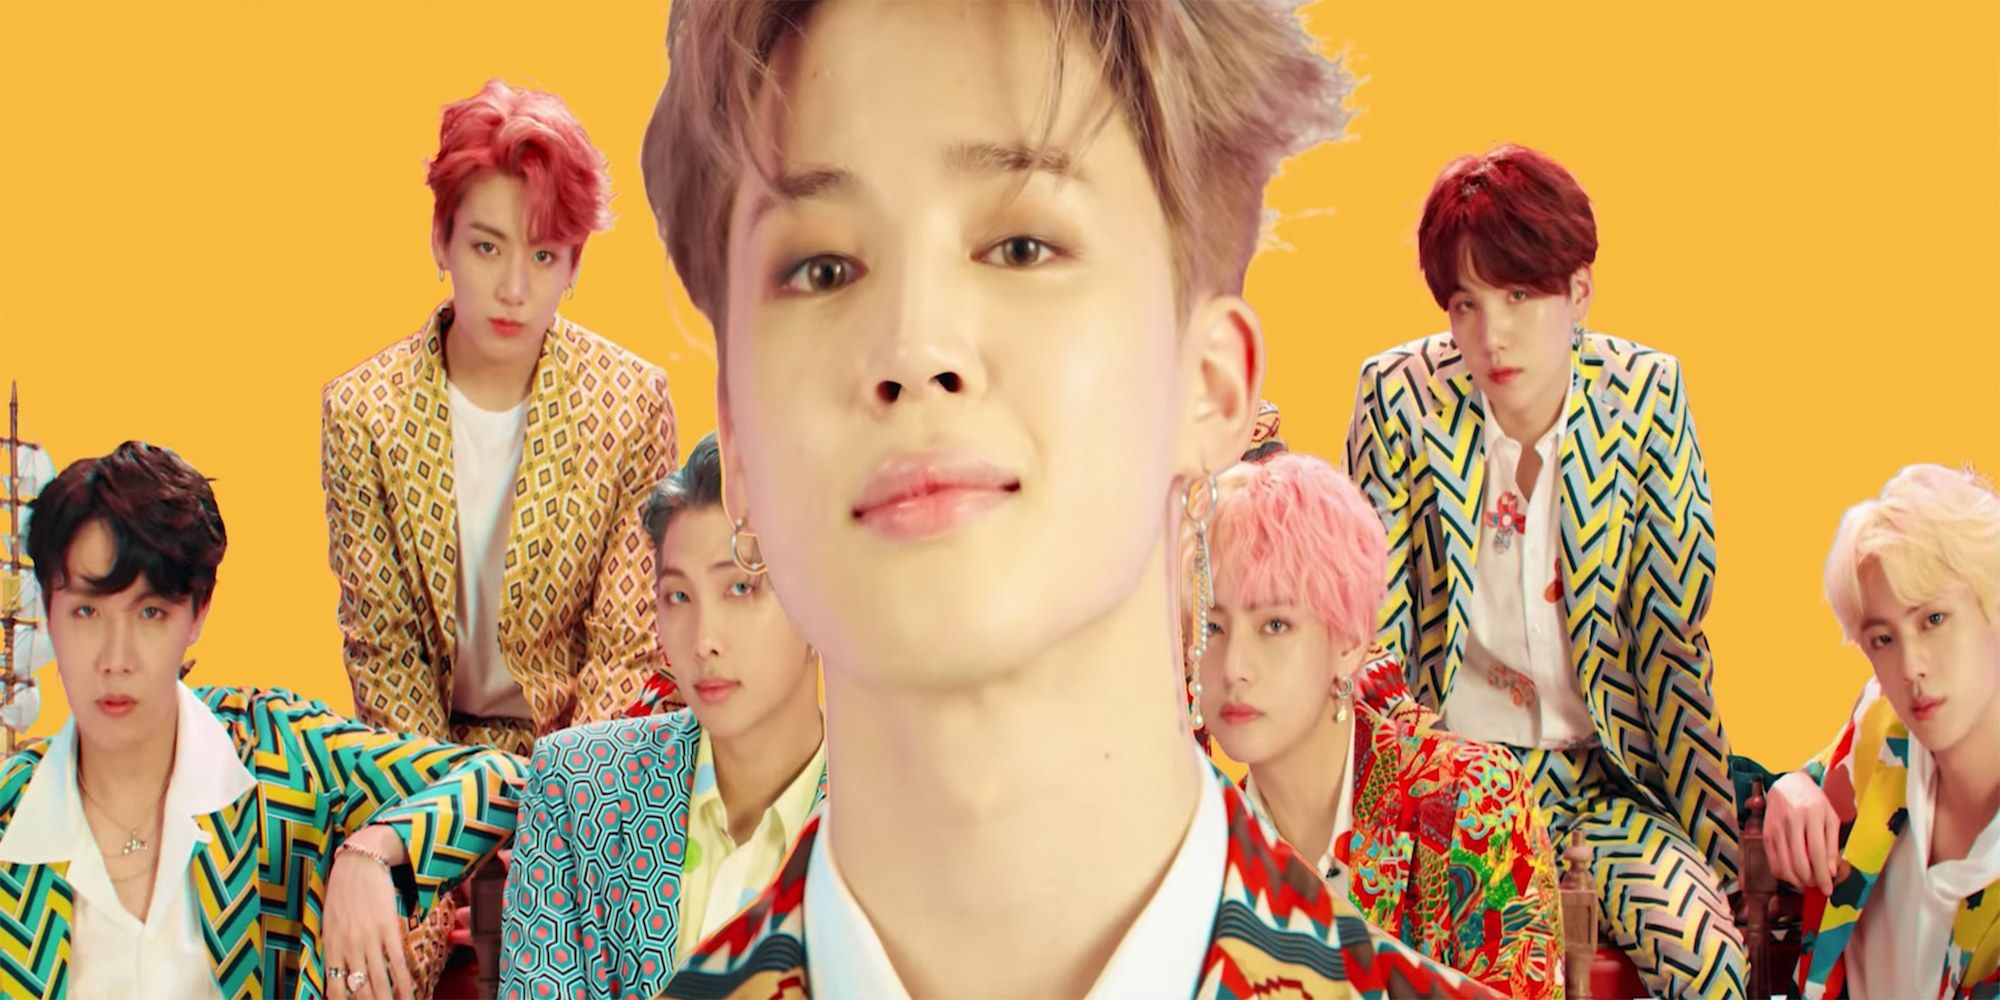 Bts New Music Video Features The K Pop Group S Best Hairstyles And Dye Jobs Yet Bts Jimin Jimin Park Jimin